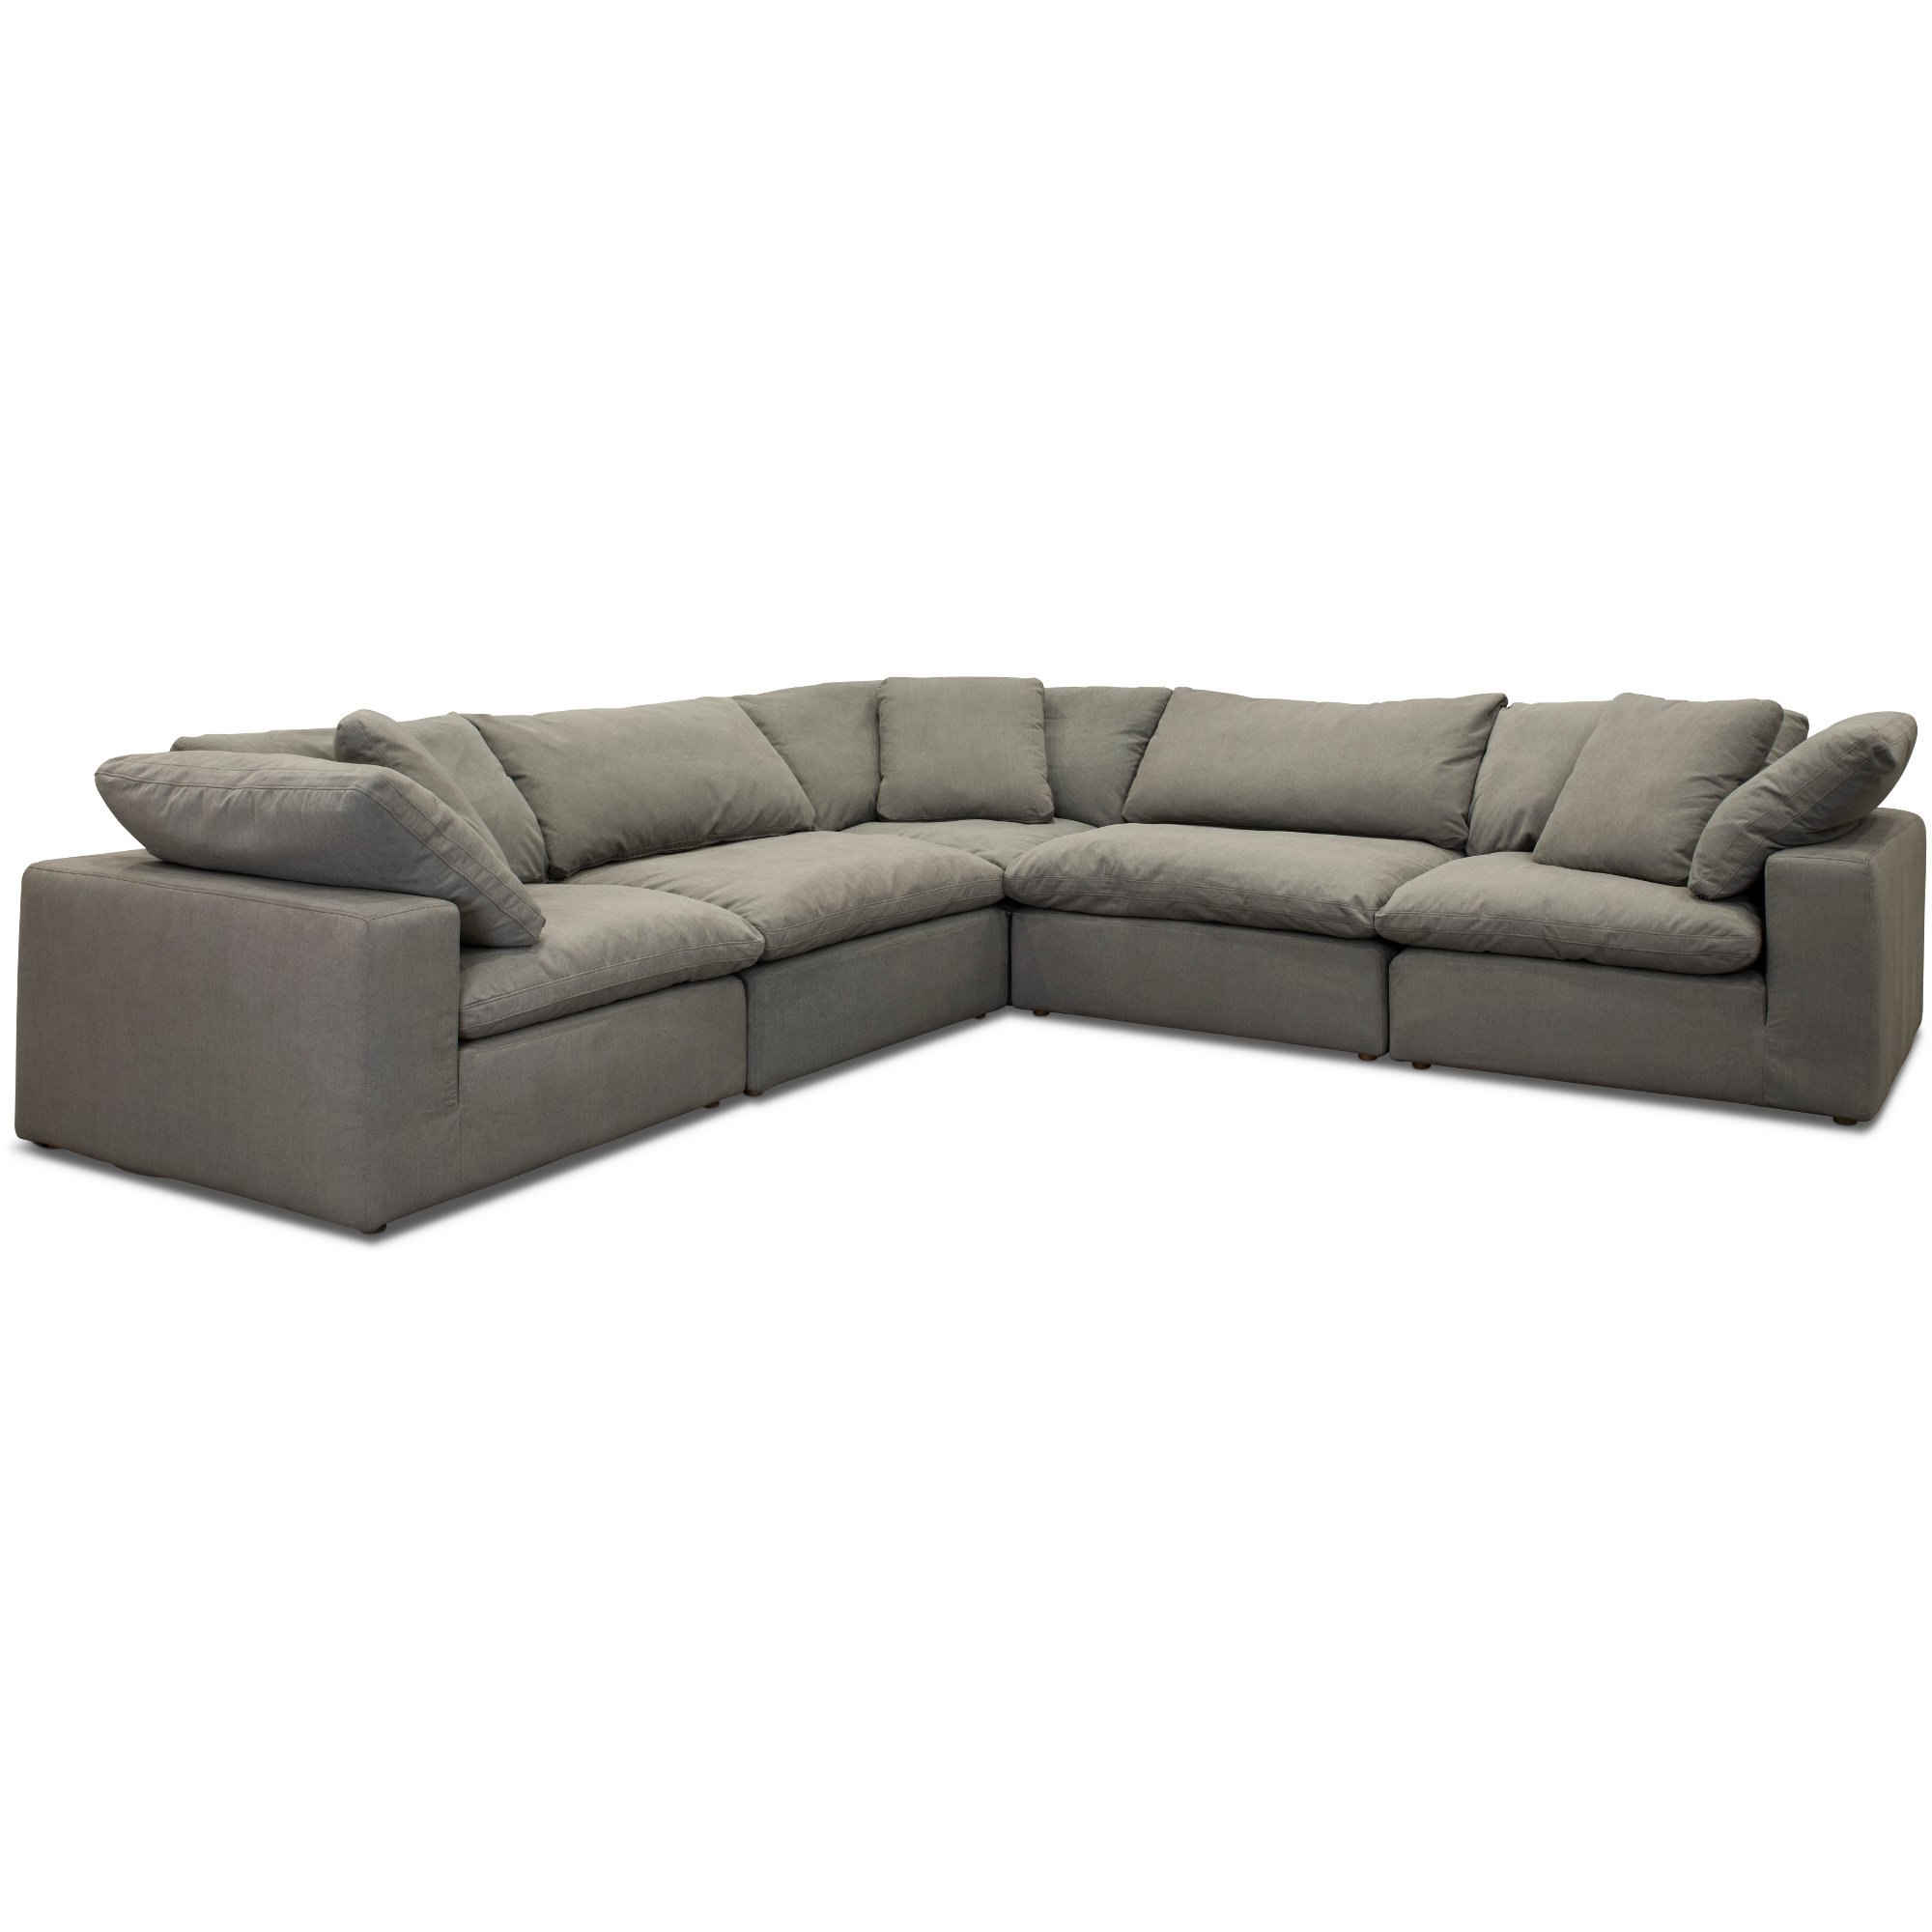 Tenny Dark Grey 2 Piece Right Facing Chaise Sectionals With 2 Headrest With 2019 Perfect Product Image Gennaro Pc Lear Sectional Lear Living Rooms (View 17 of 20)